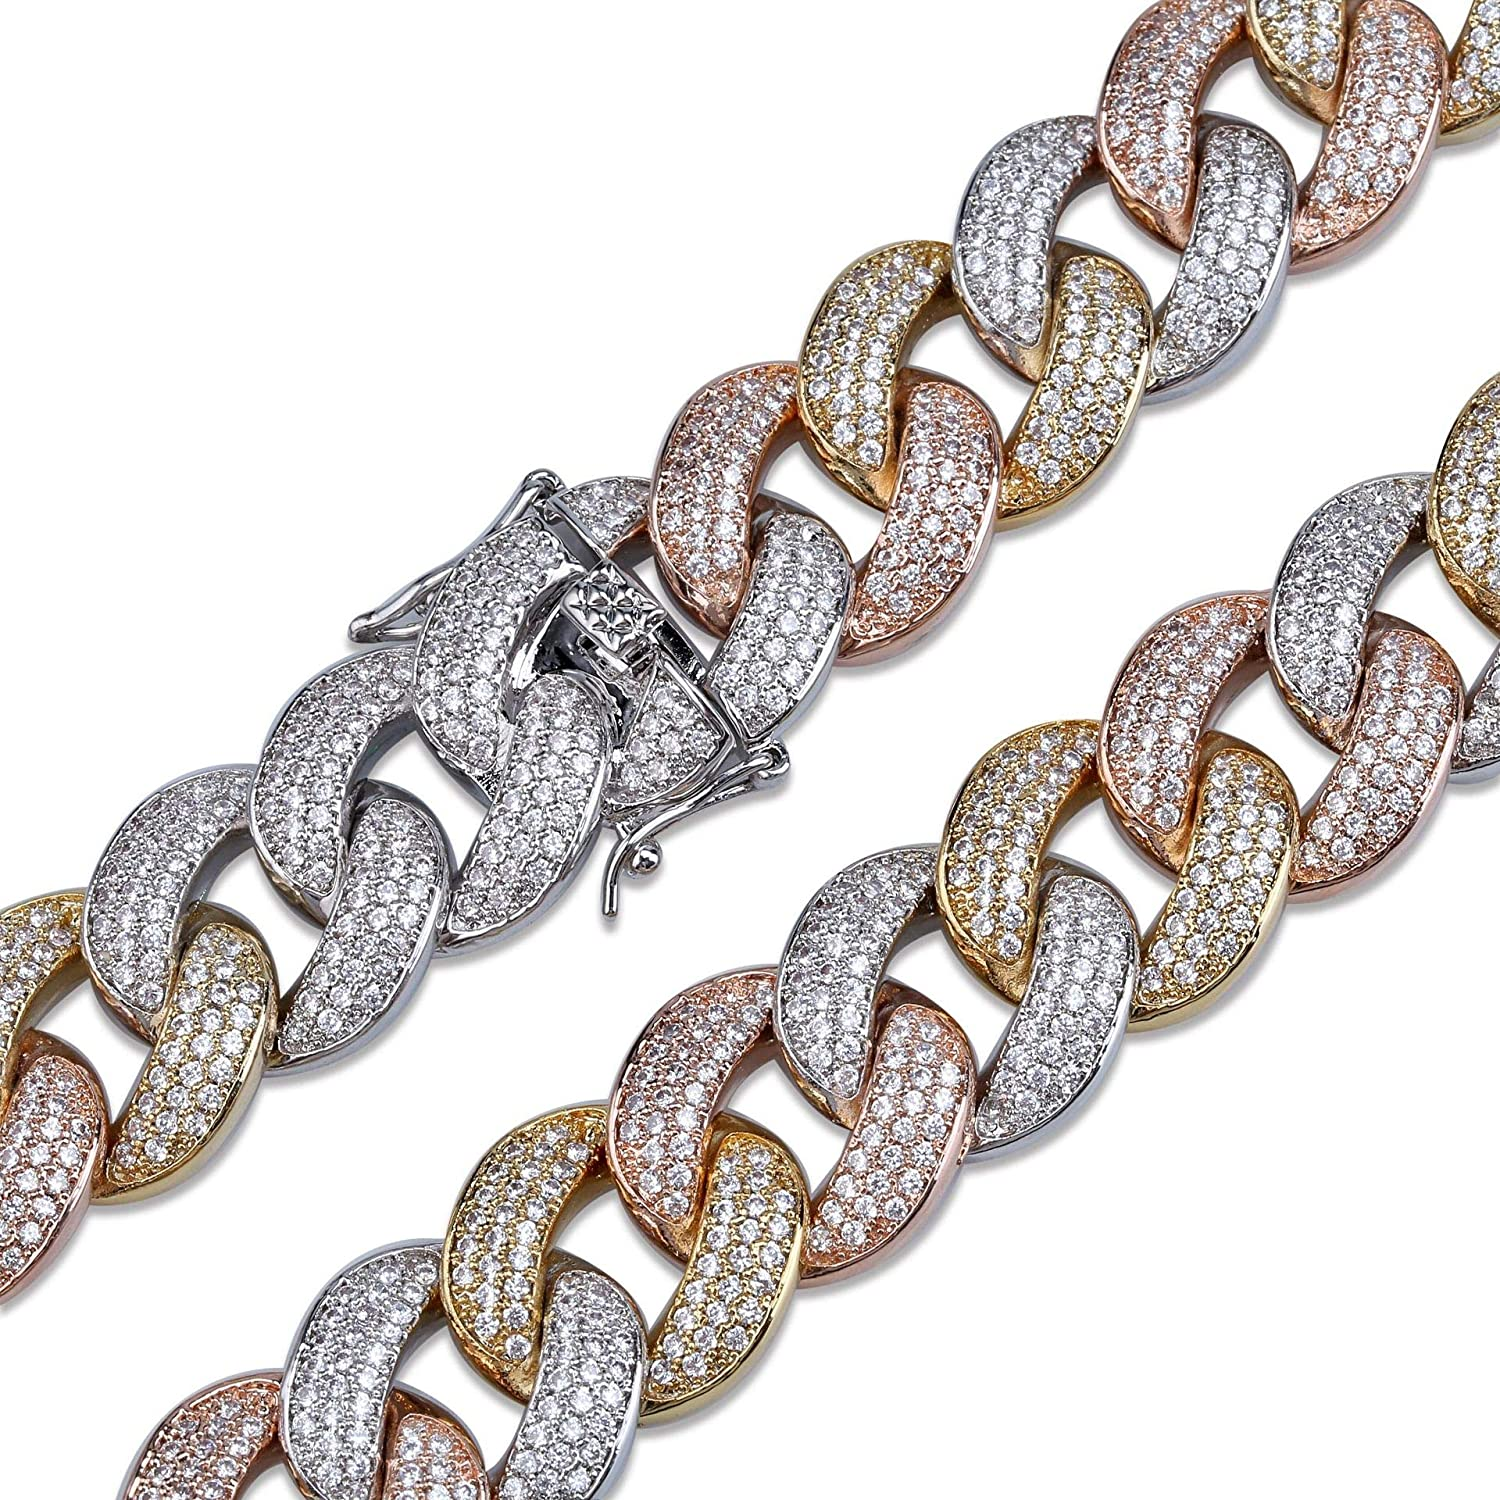 AOVR Hip Hop Mens 10-28mm Miami Chain 18K Gold Plated Fully Iced-Out CZ Crystal Bling Bling Necklace